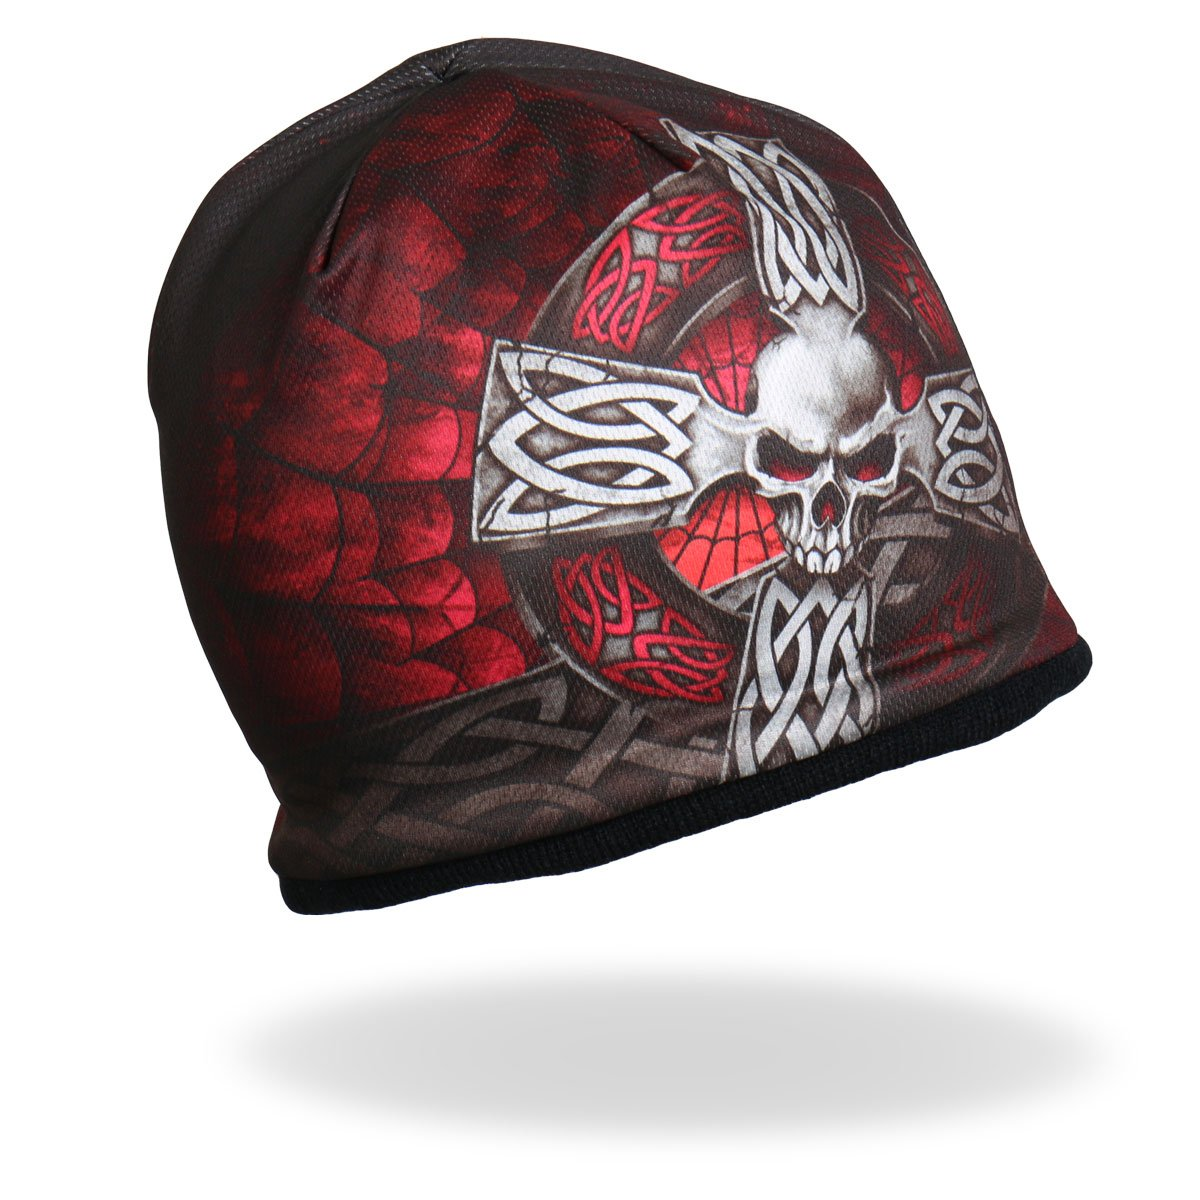 Hot Leathers, SUBLIMATED CELTIC CROSS, Original Design, Soft Cotton Authentic Motorcycle Apparel, KNIT HAT Officially Licensed Originals